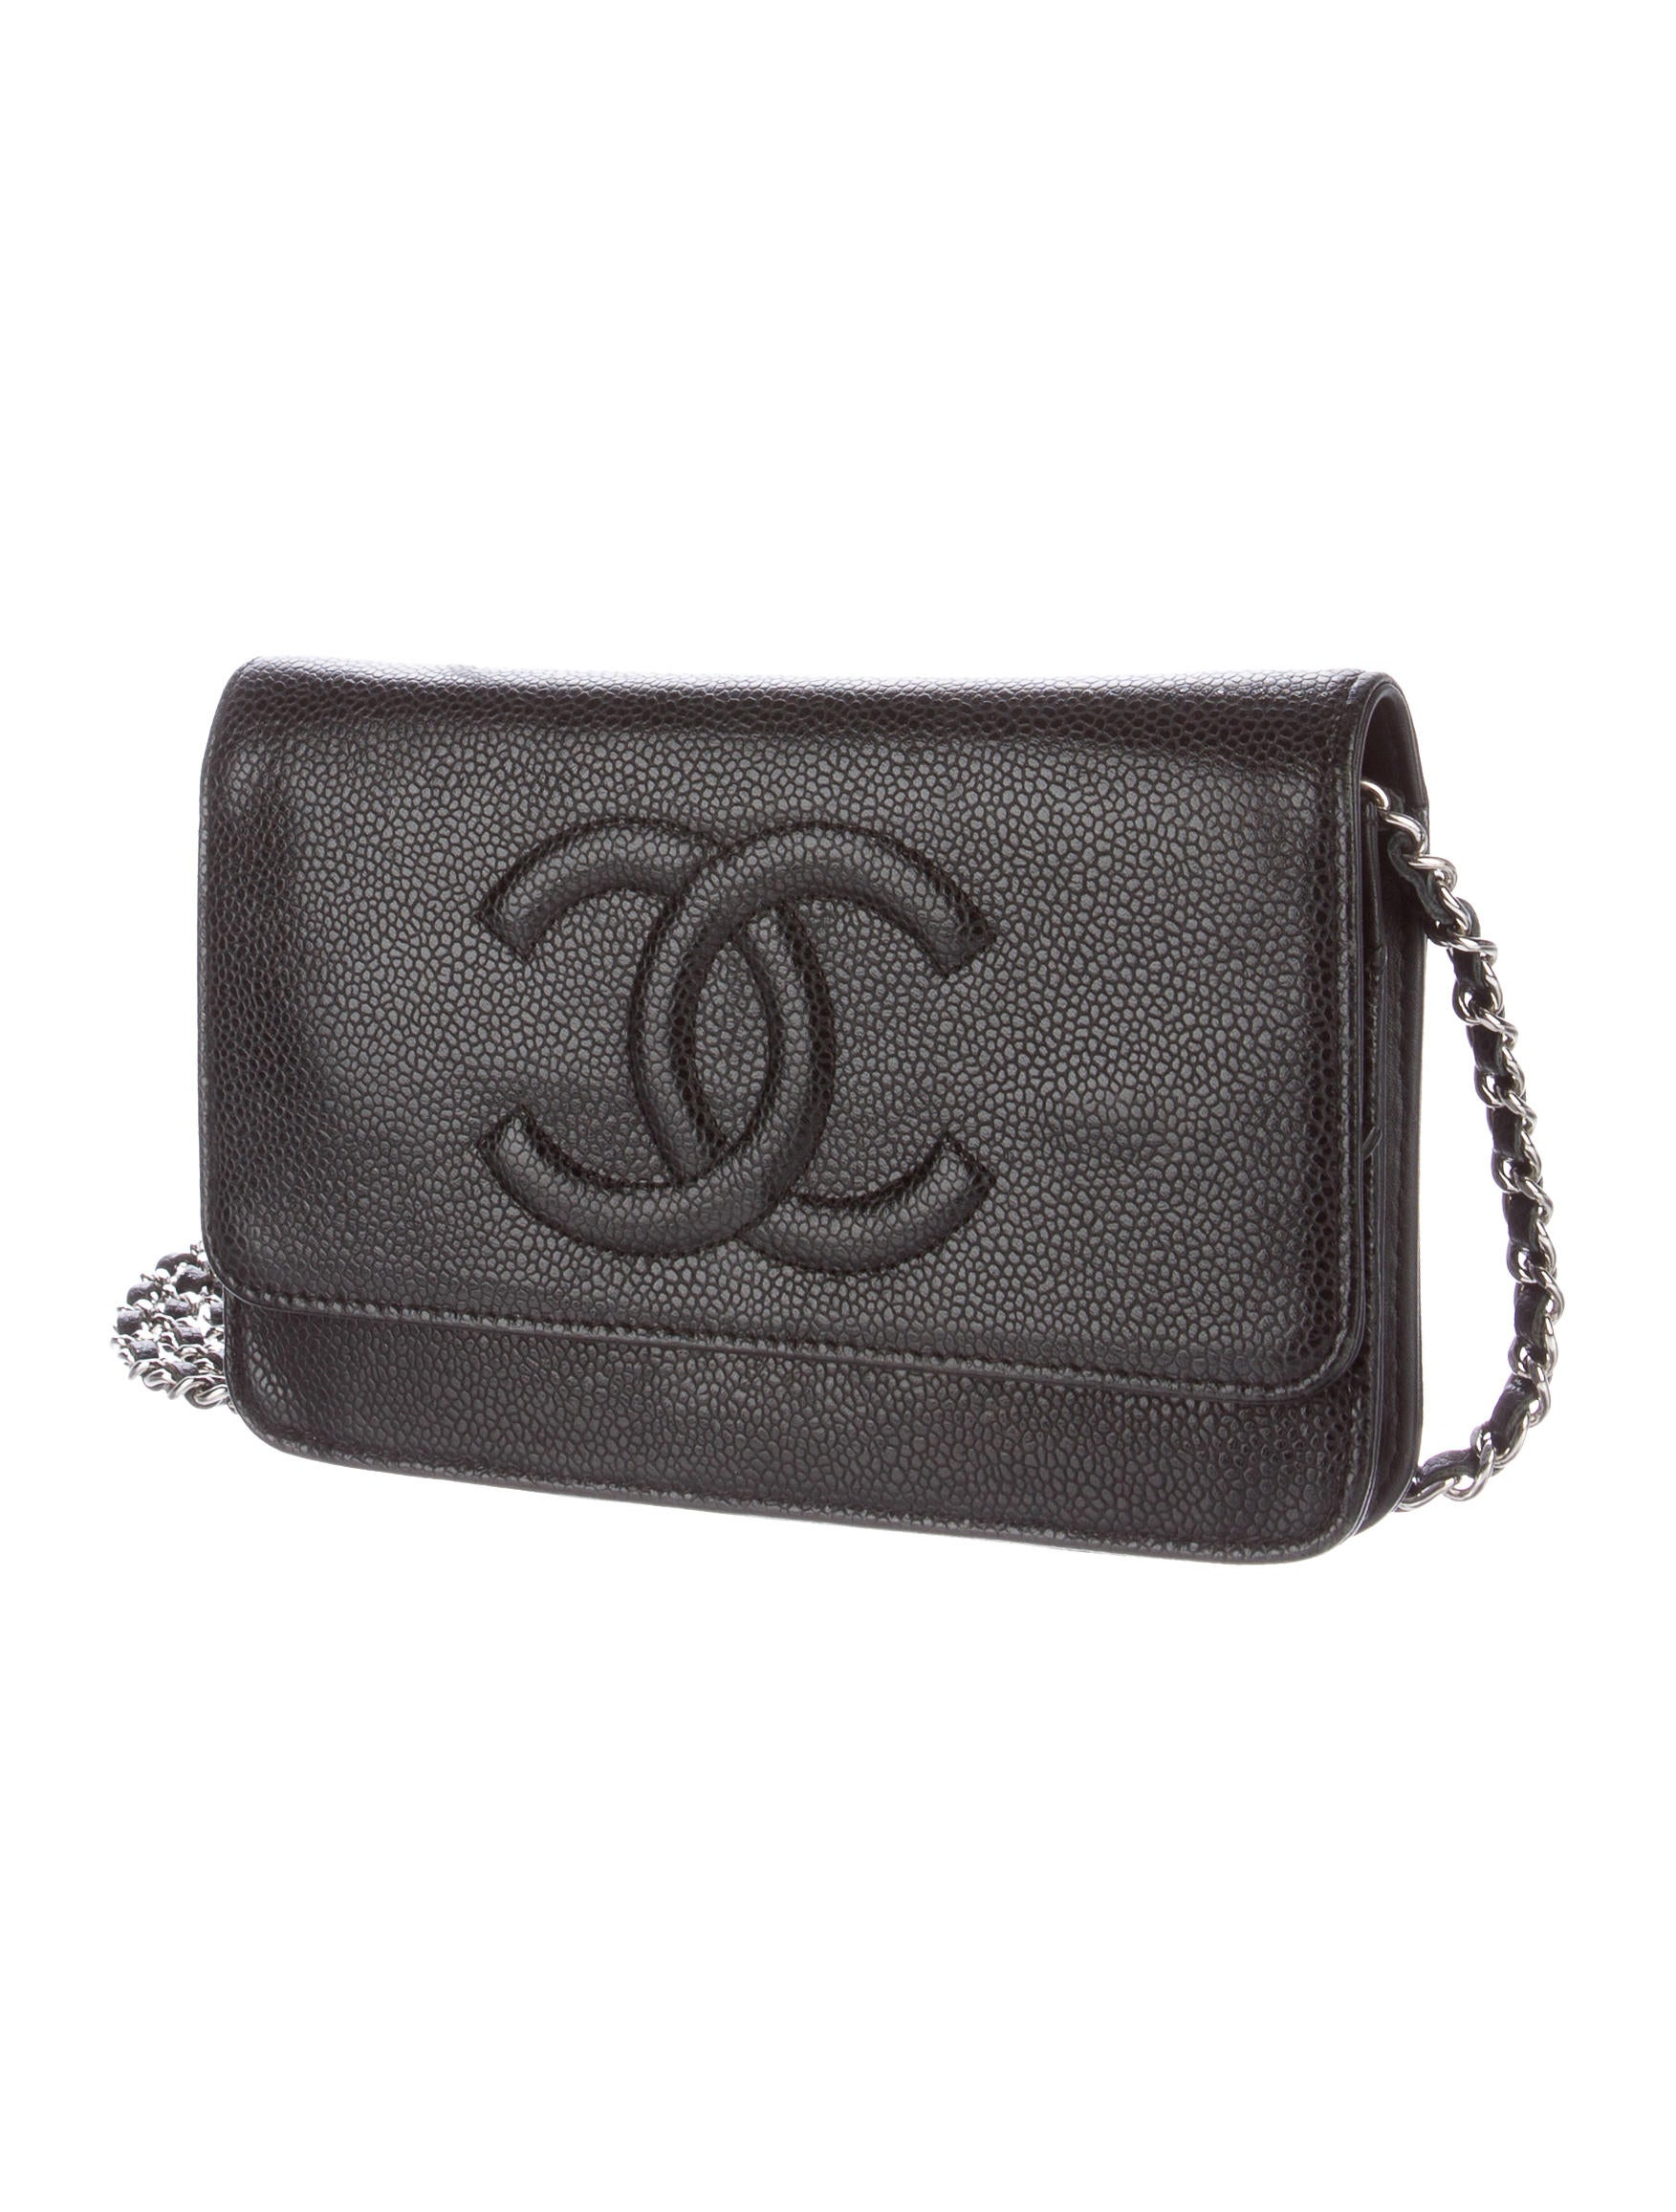 78df40a8709f Chanel Wallet On Chain Therealreal | Stanford Center for Opportunity ...